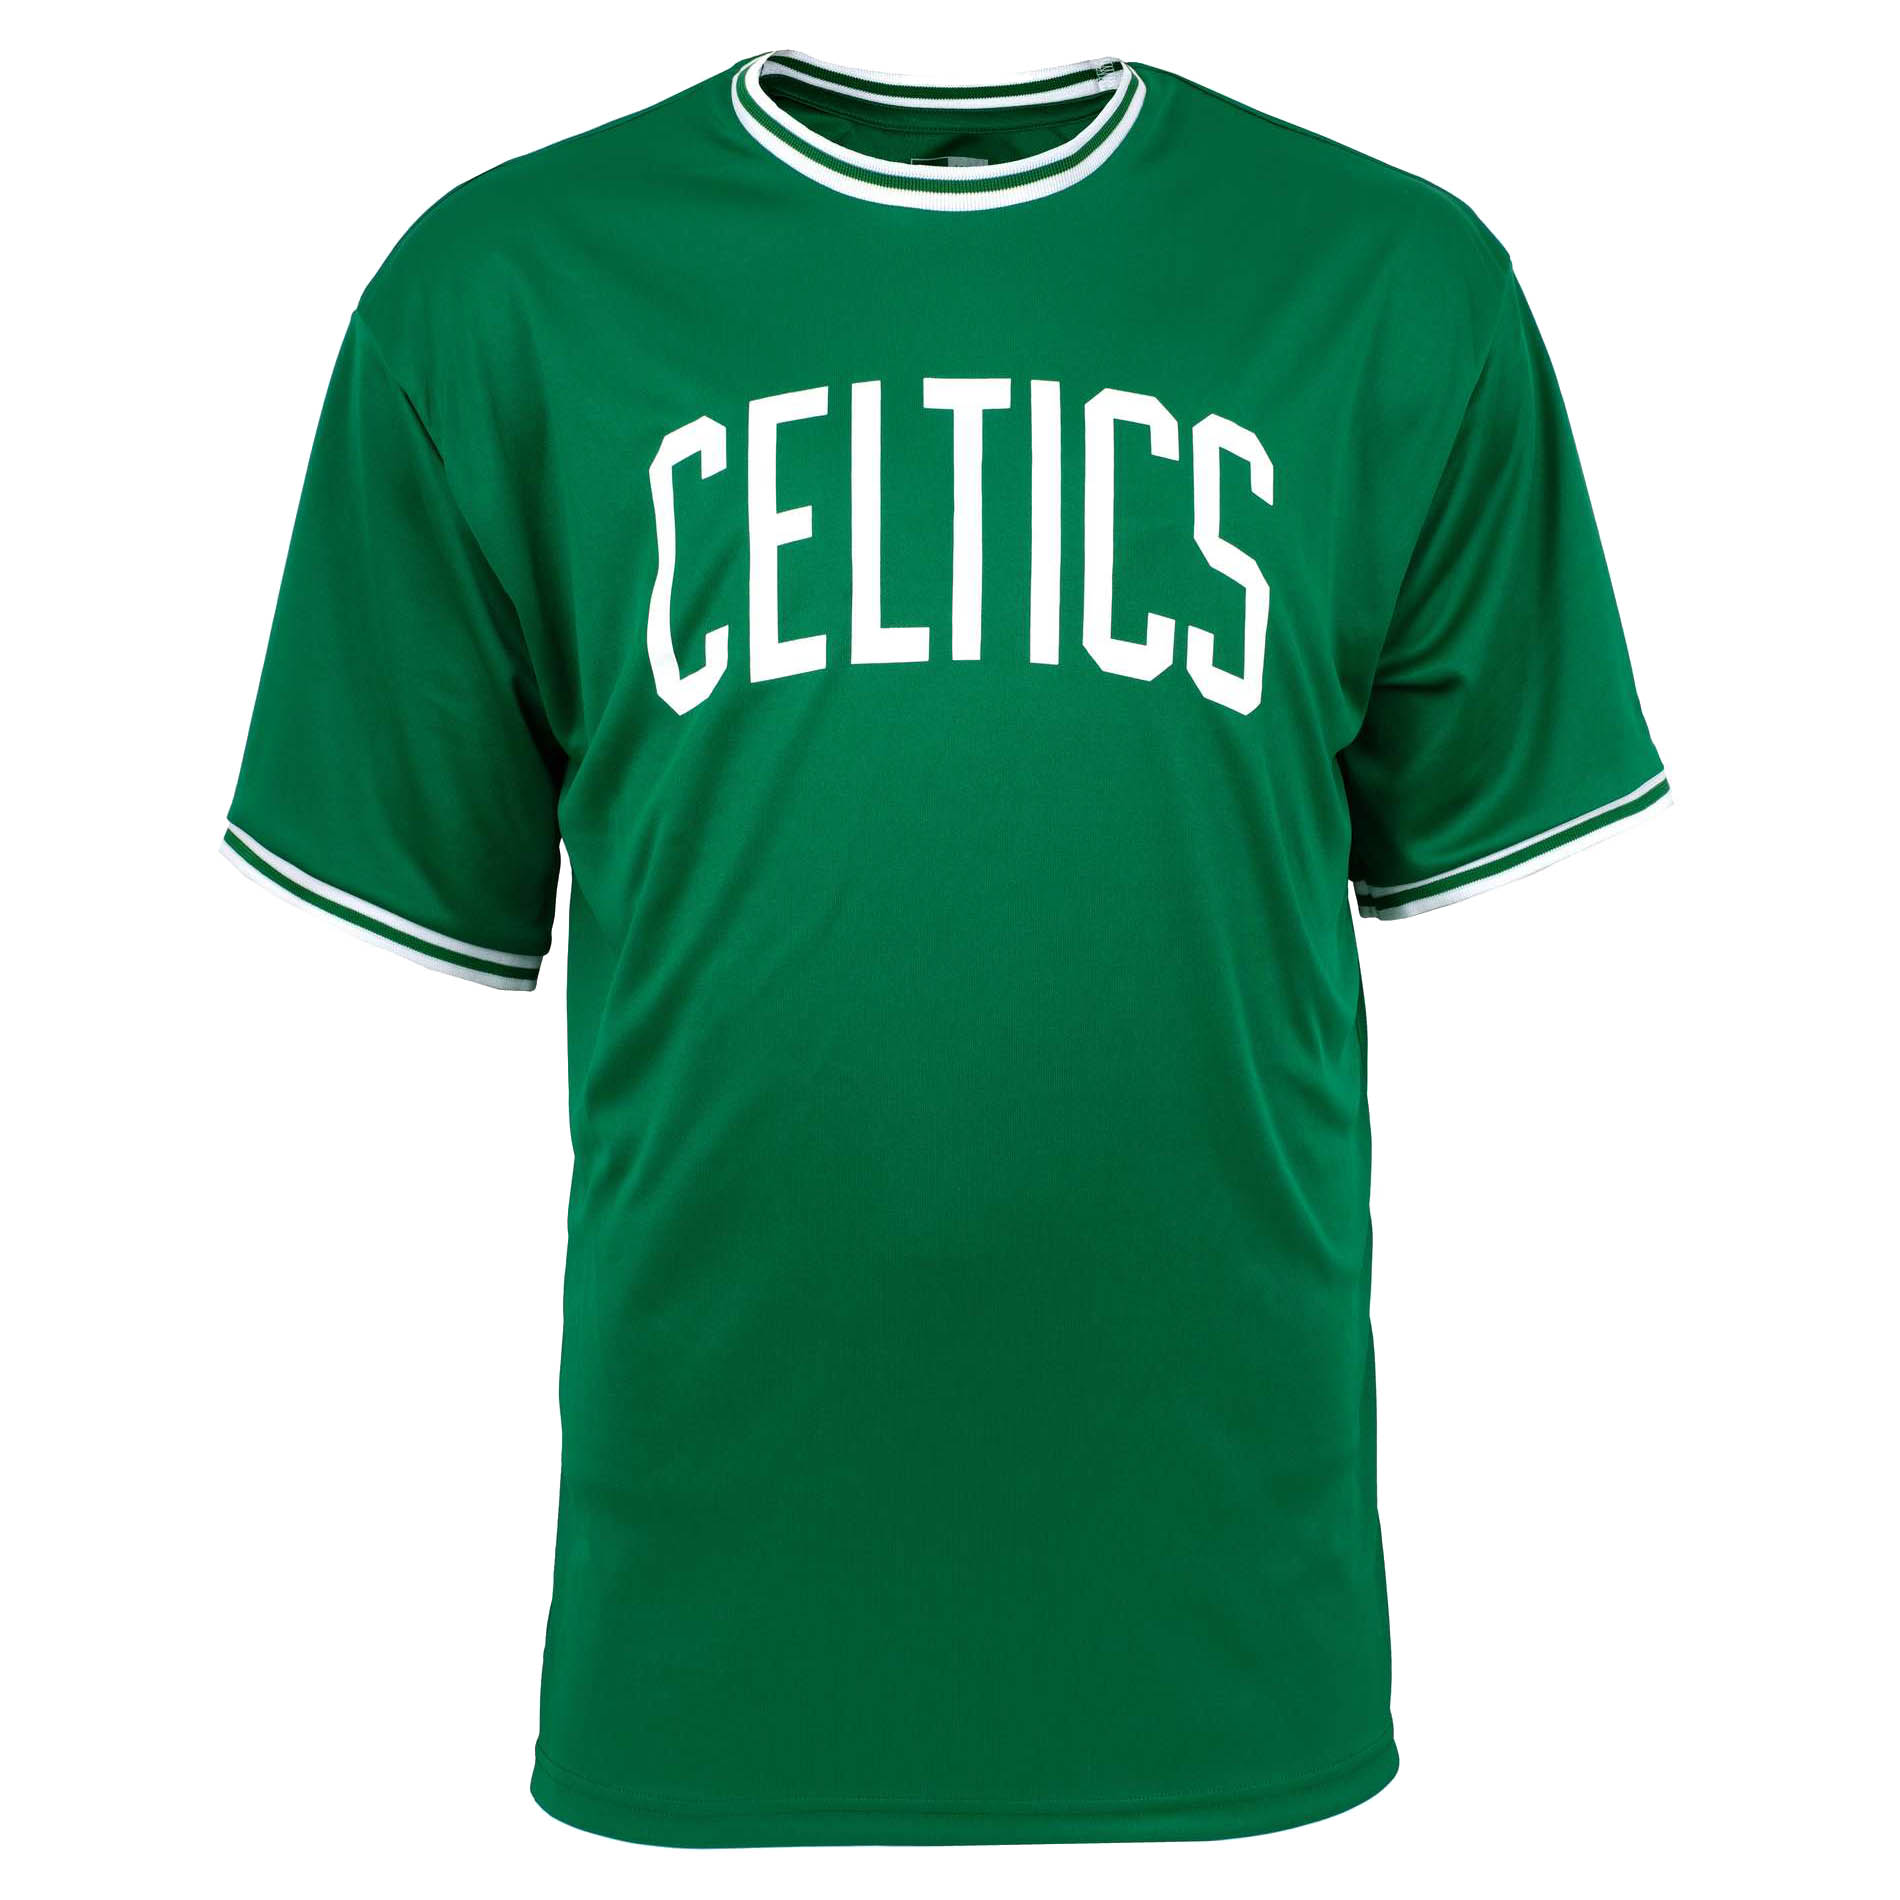 New Era Boston Celtics Nba Tipping Wordmark Tee 300 - Abbigl